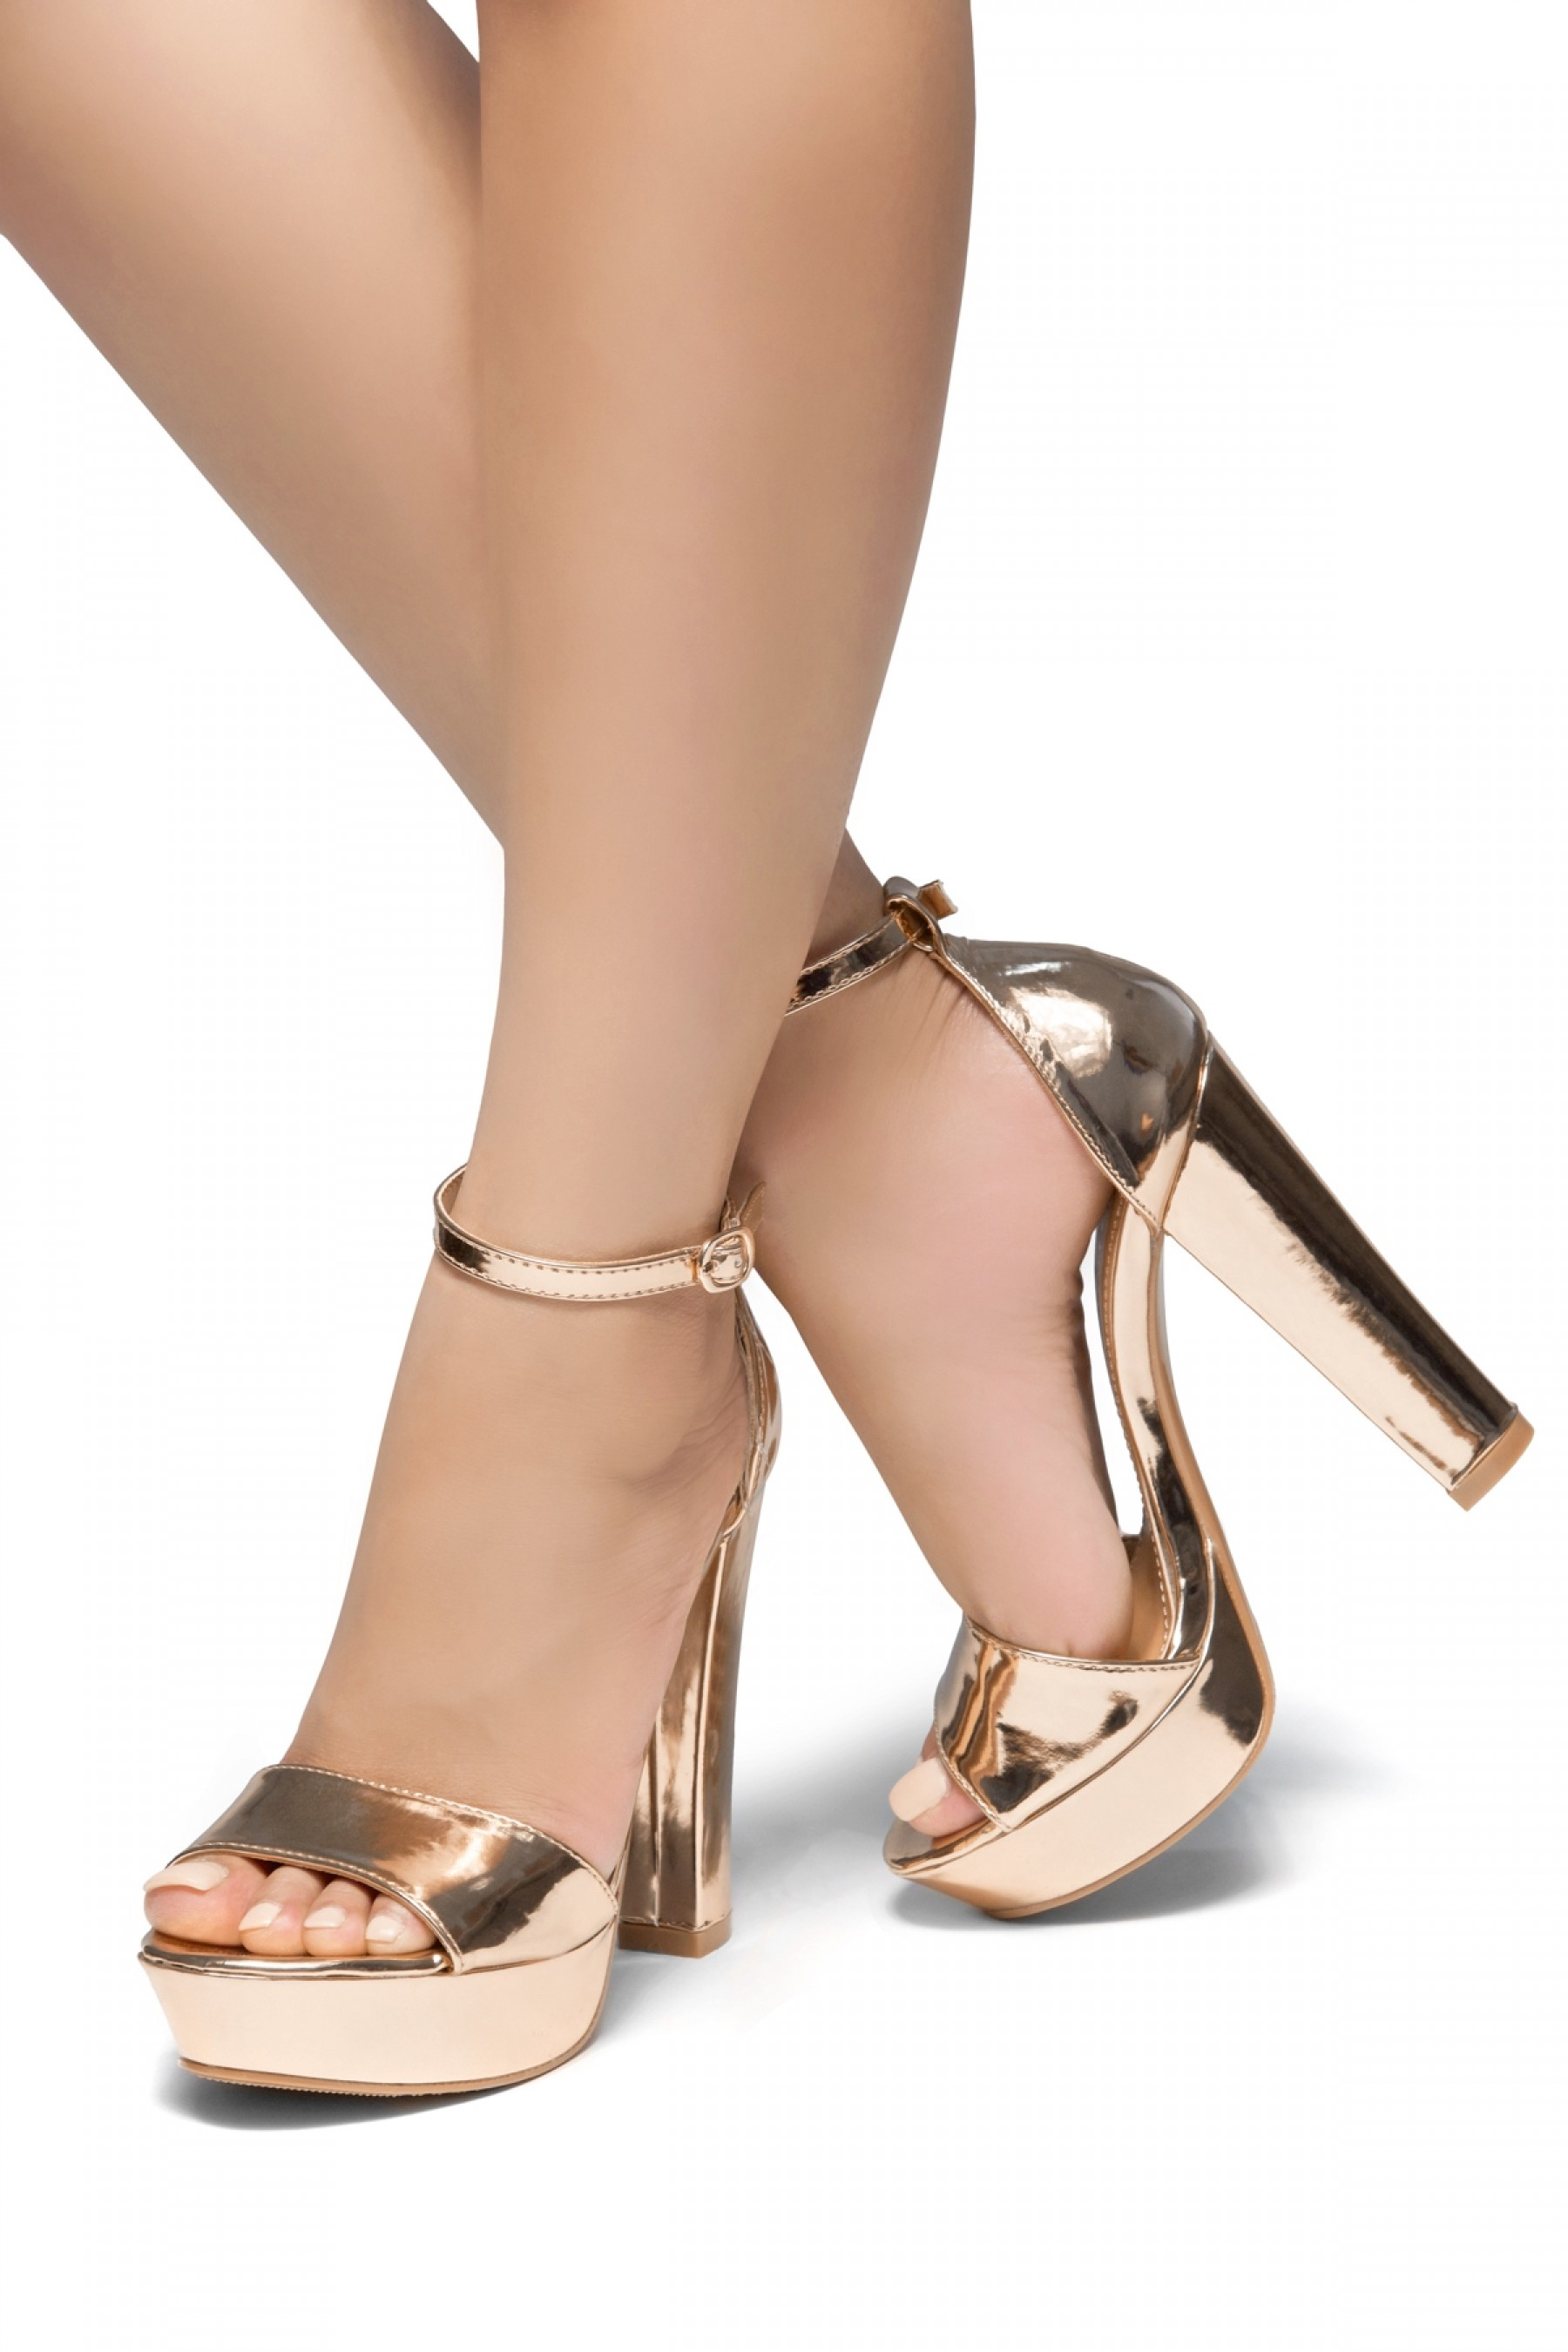 HerStyle Island-Chunky heel, Adjustable Ankle Strap (RoseGold)